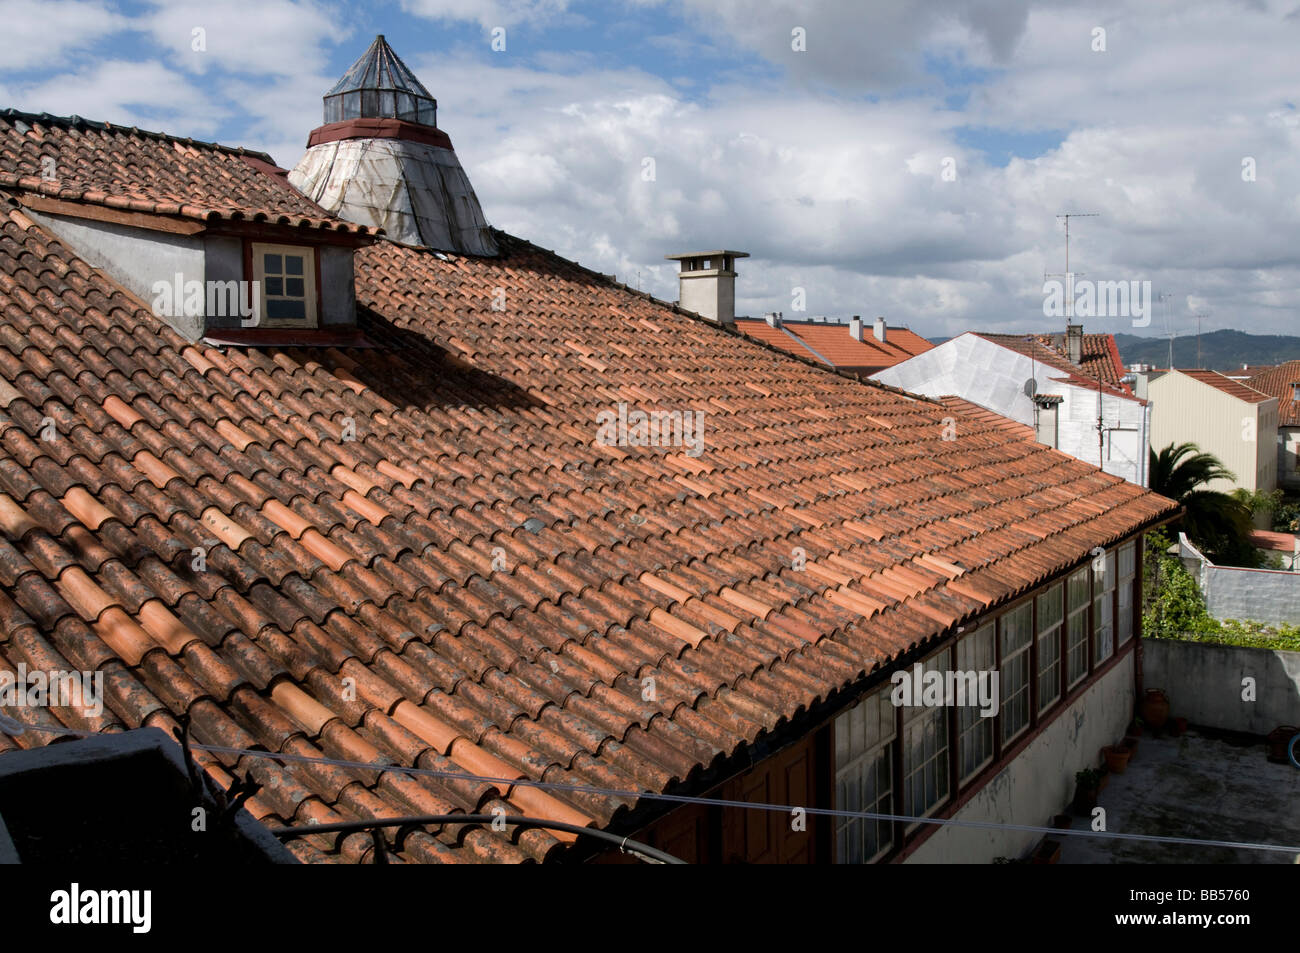 tiled roof in Portugal - Stock Image